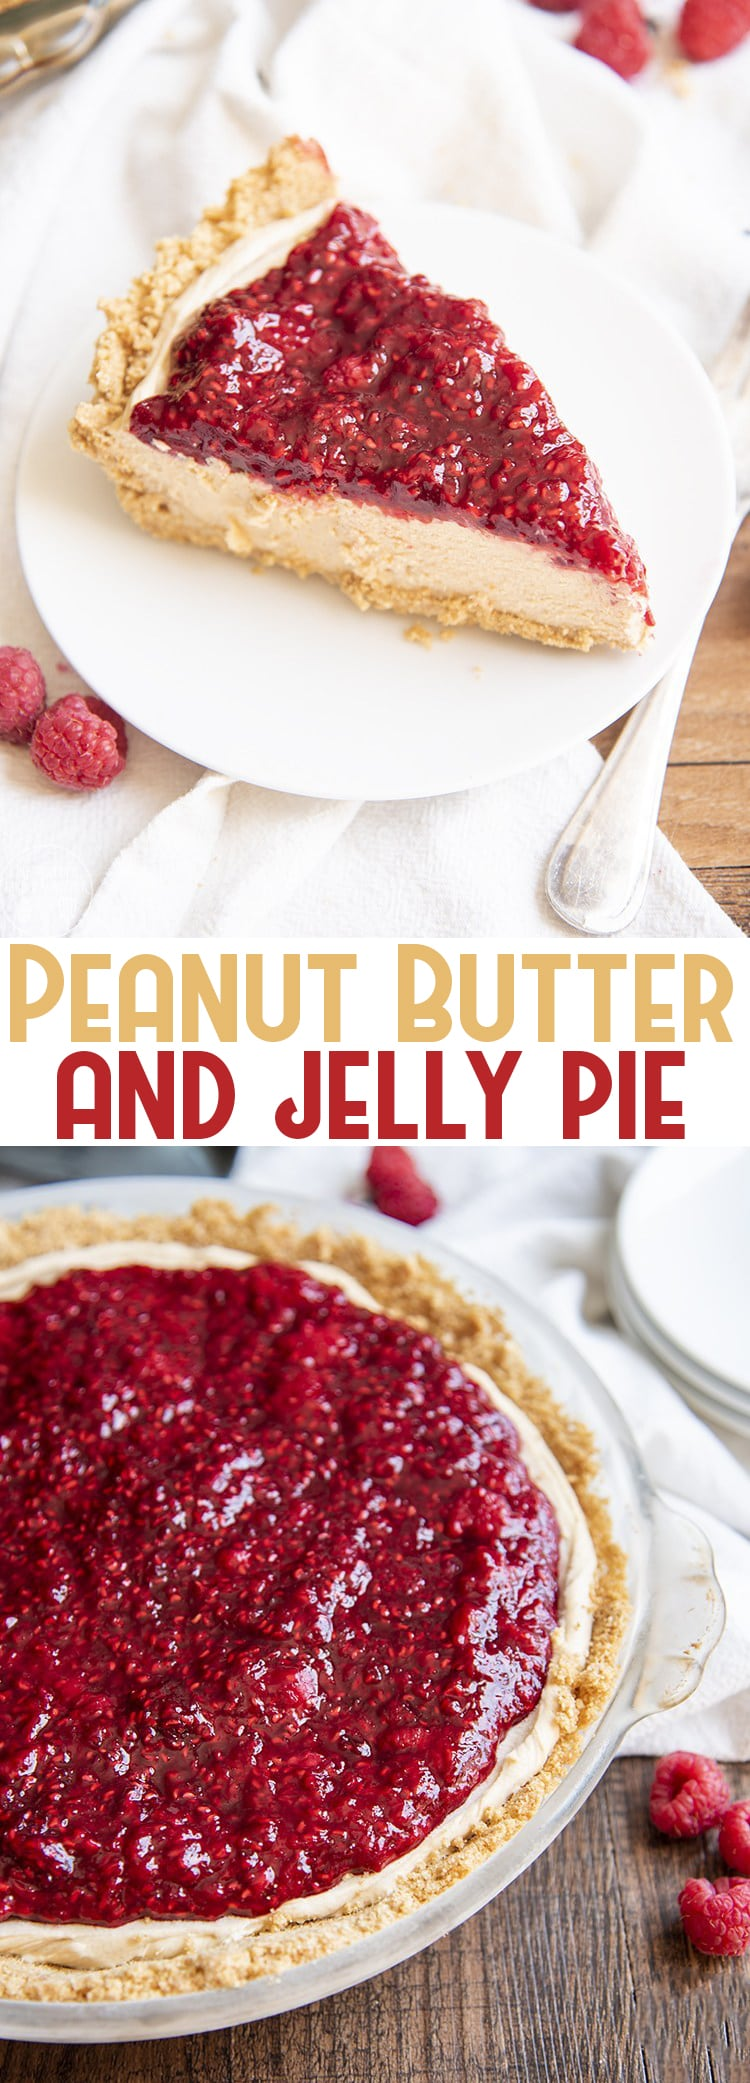 This peanut butter and jelly pie is a match made in heaven, with a creamy no bake peanut butter pie filling topped with a quick homemade raspberry jelly, this pie is a delicious combination of flavors for any occasion.#peanutbutterandjelly #peanutbutterpie #peanutbutterandjellypie